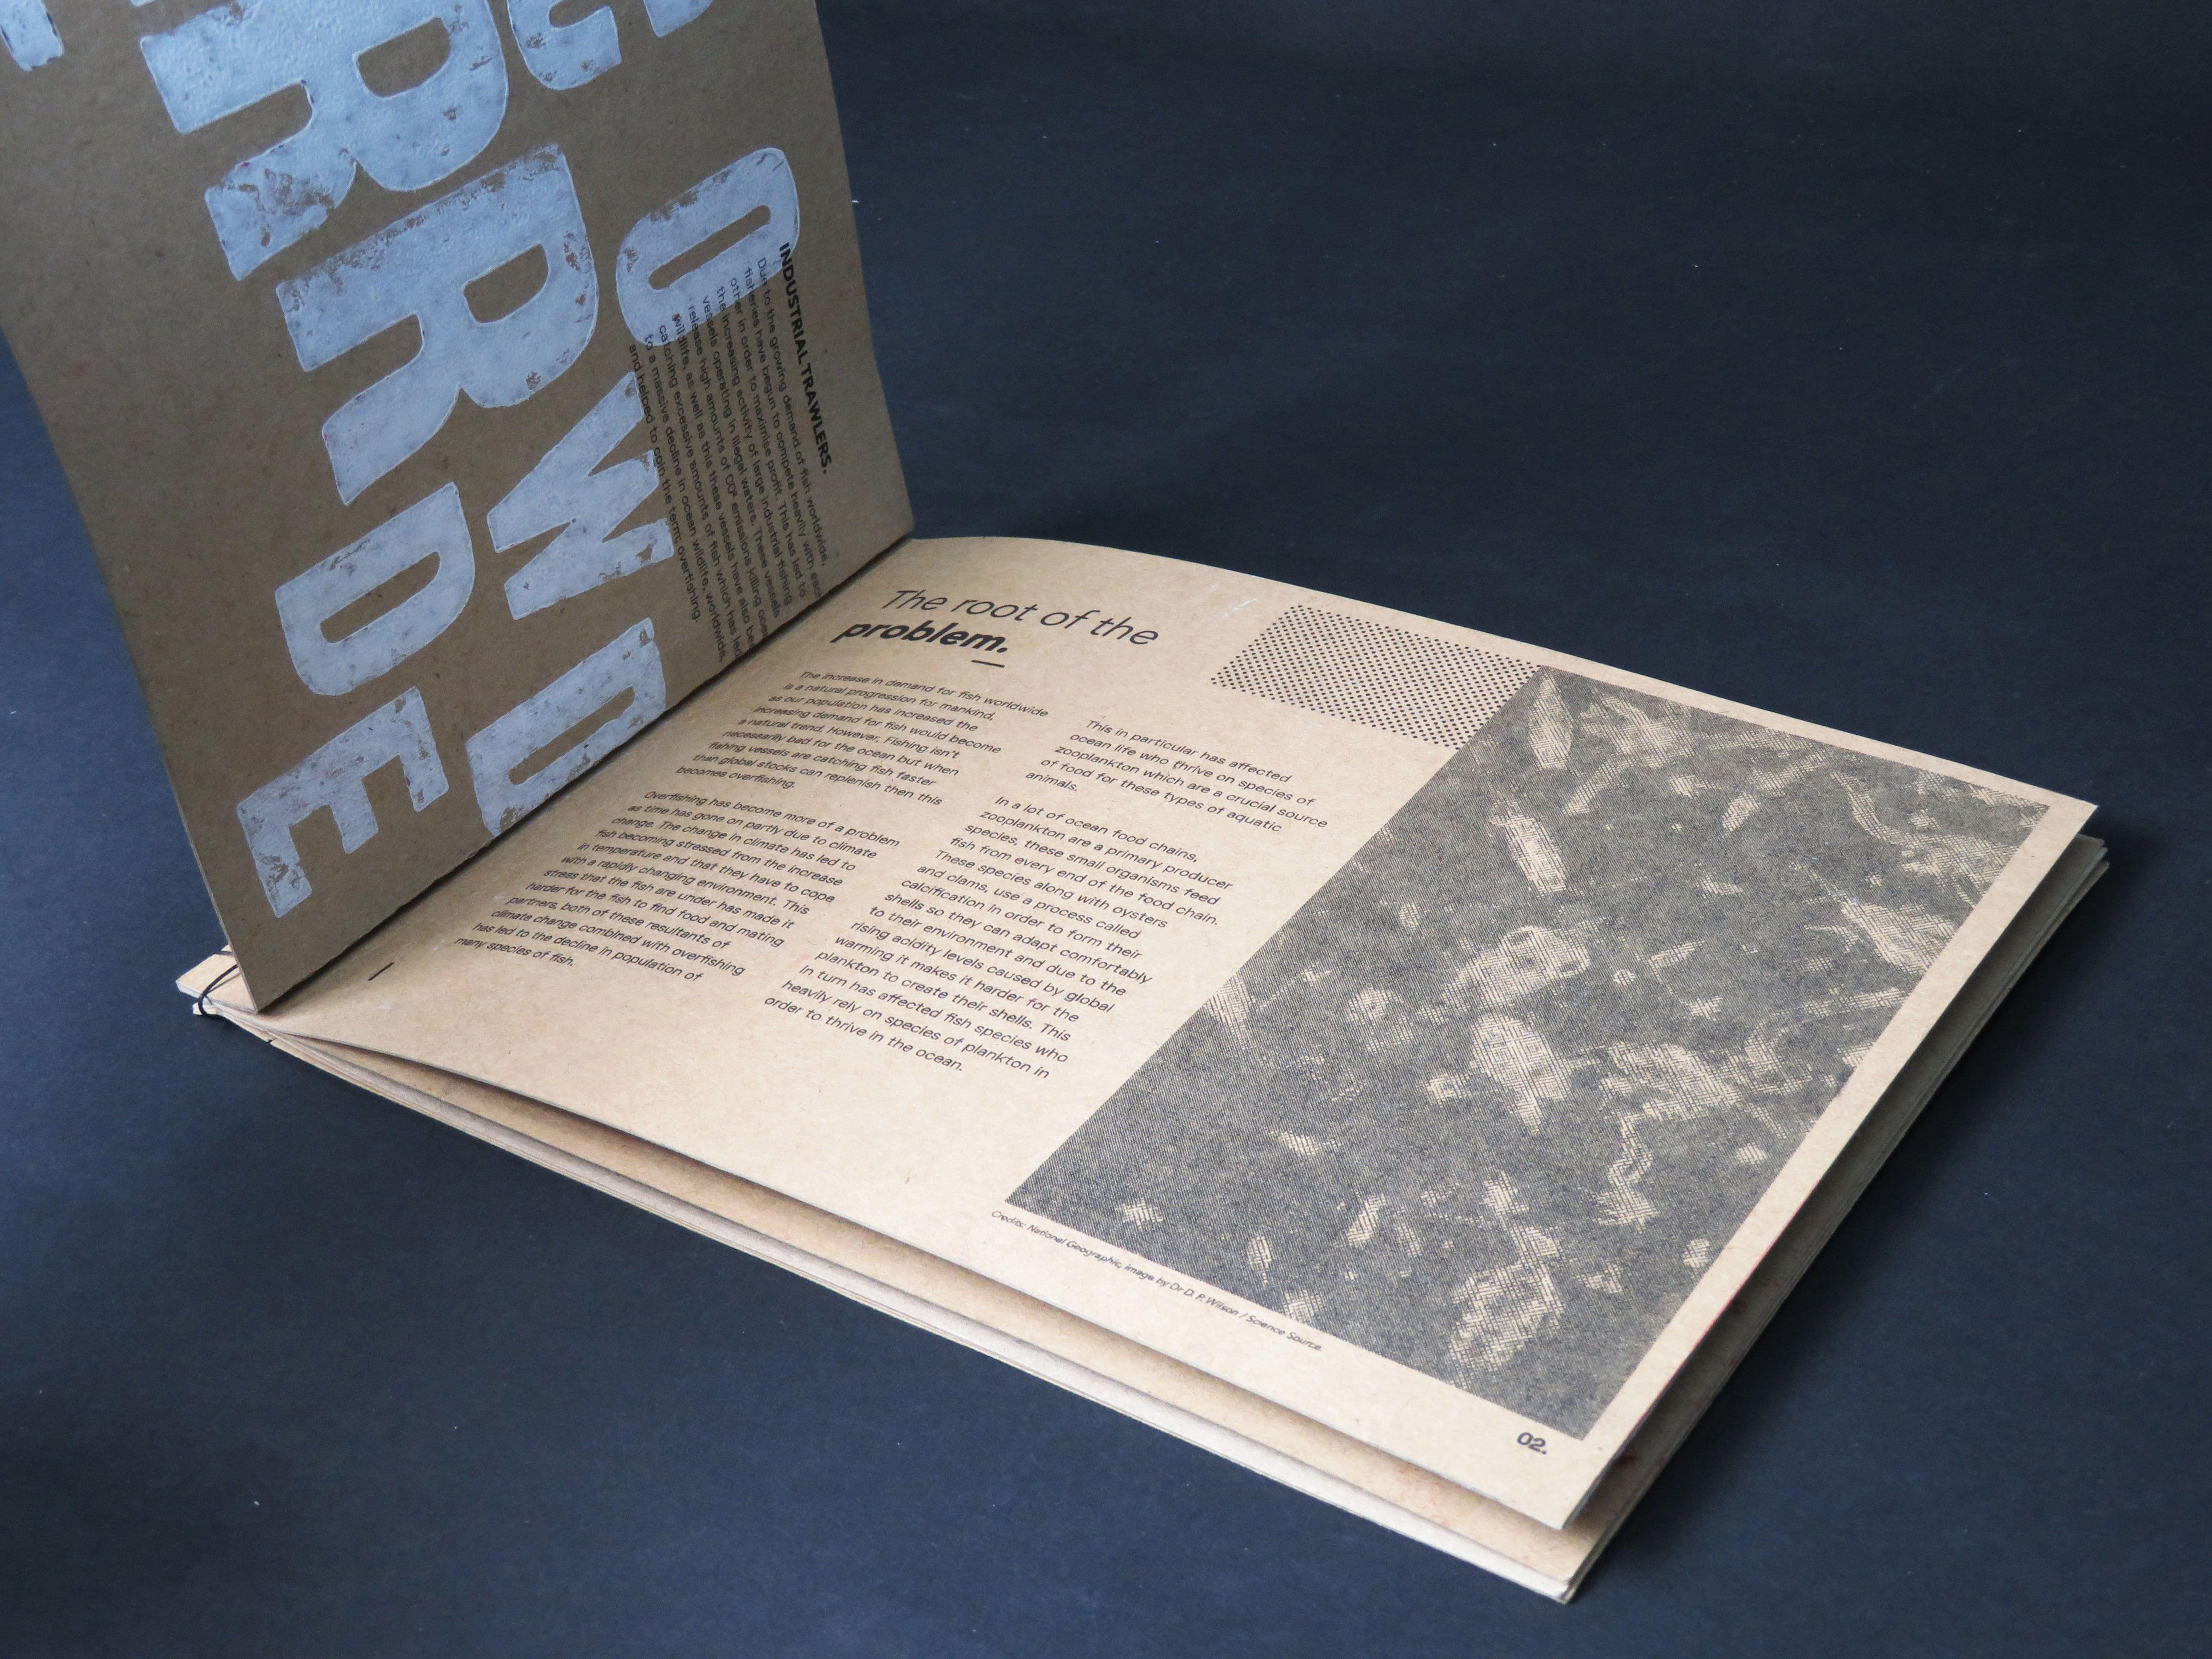 Open book showing the layout of text with white lino printed words